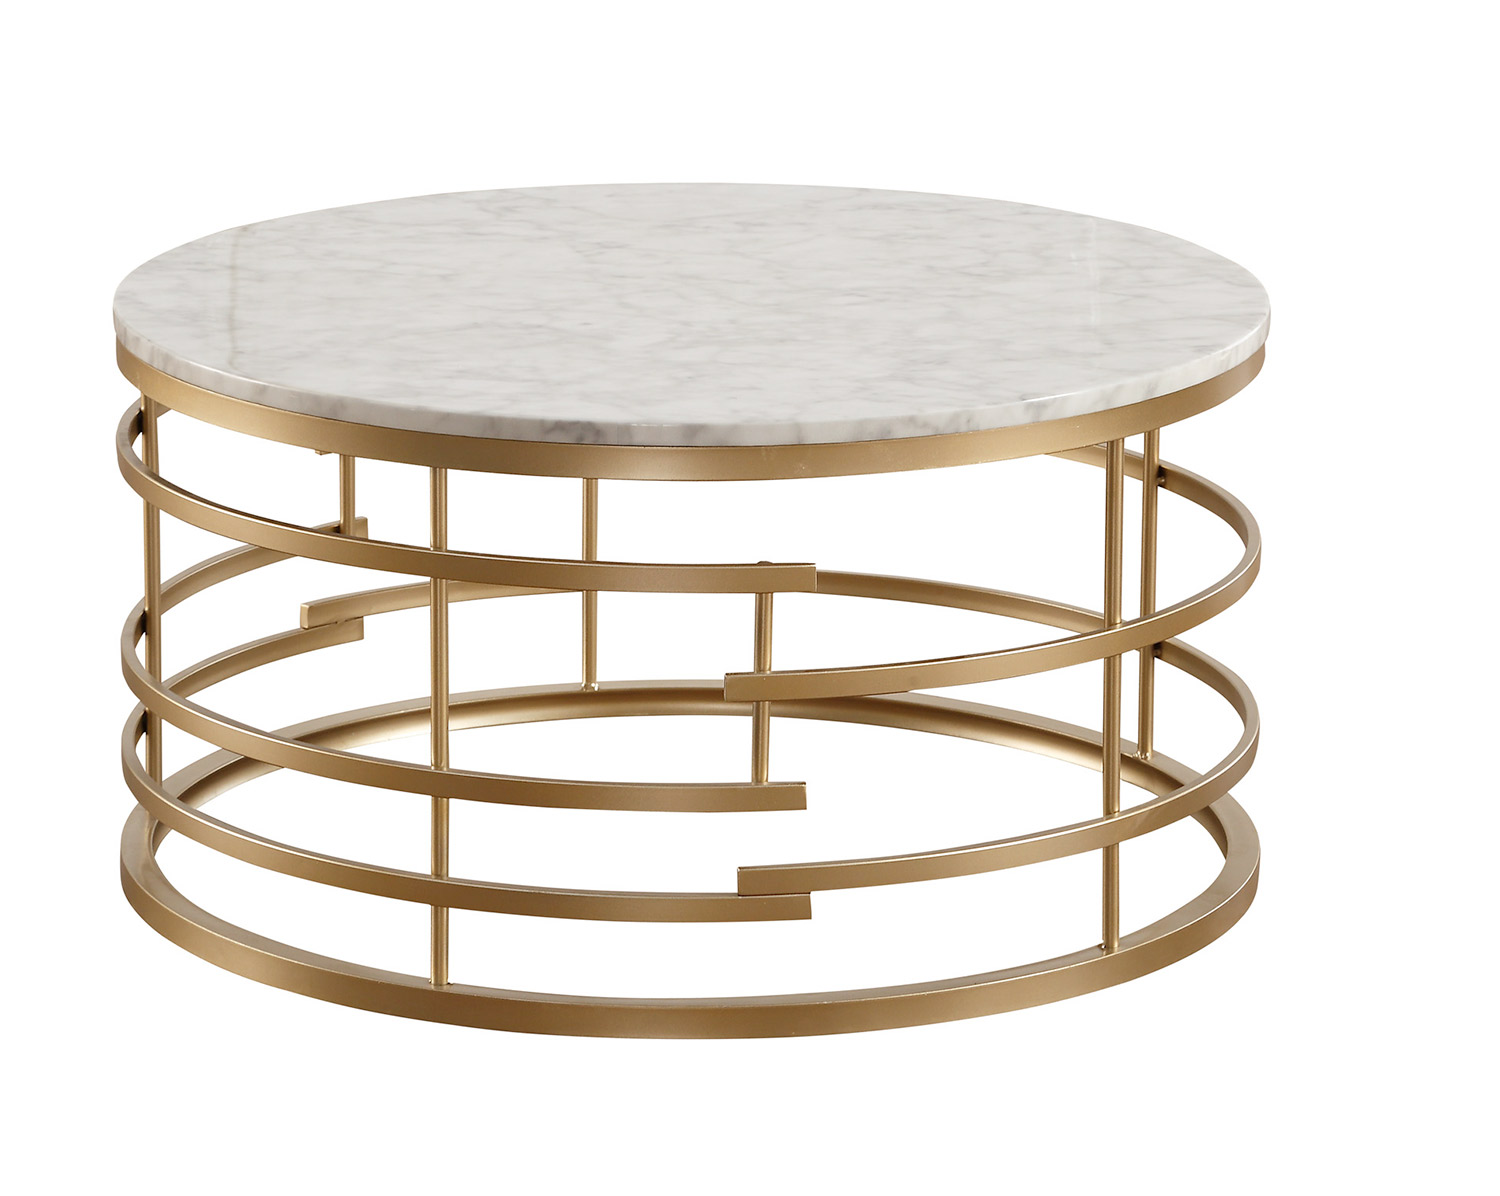 Homelegance Brassica Round Cocktail Coffee Table With Faux